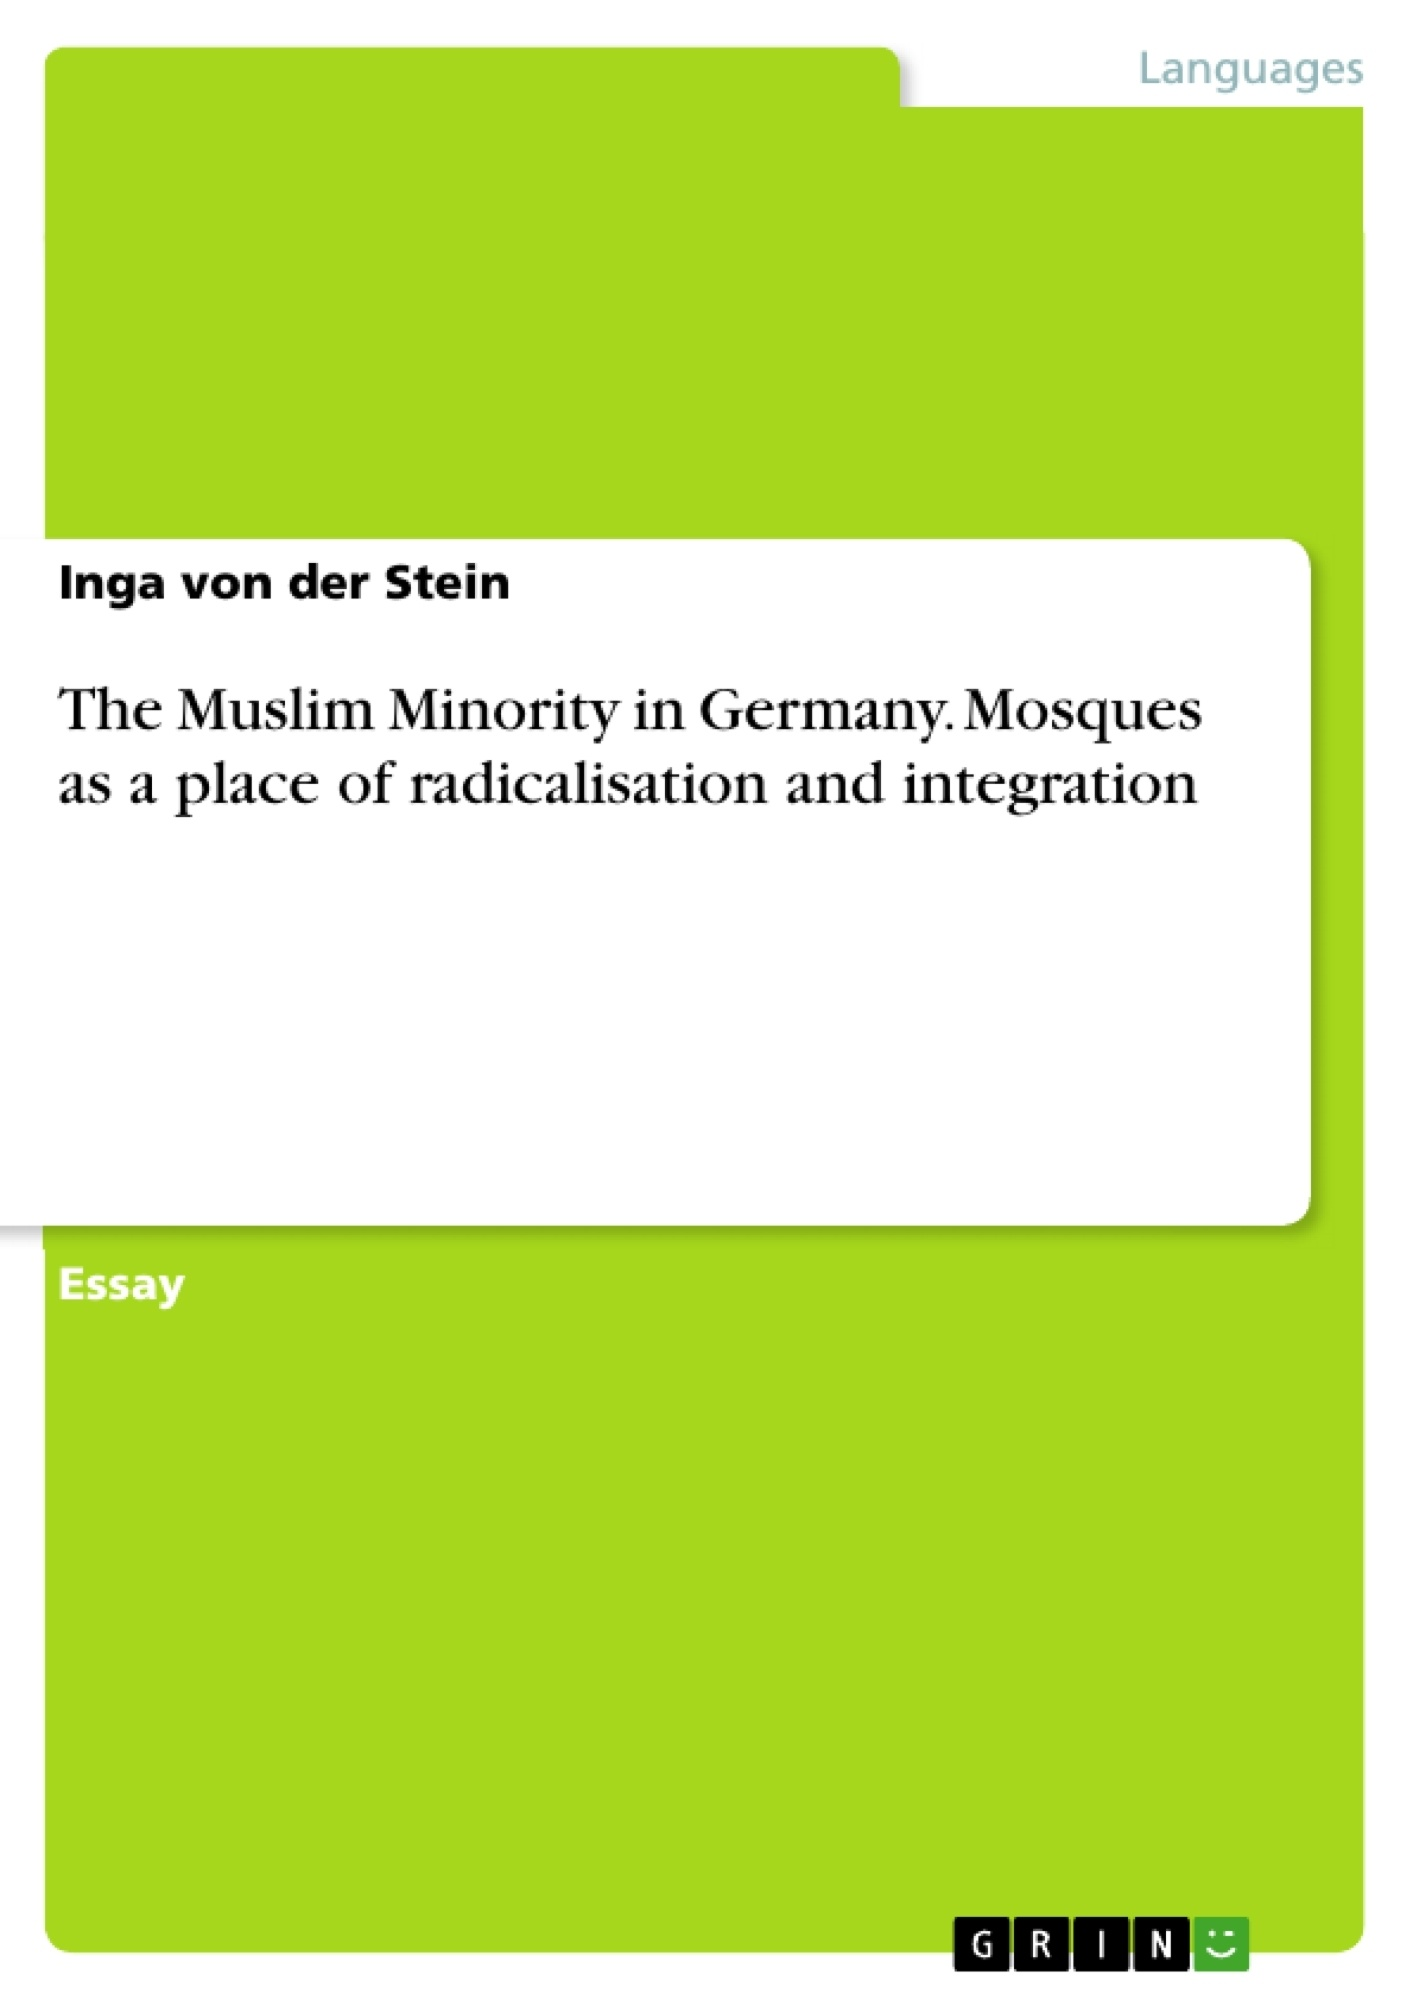 Title: The Muslim Minority in Germany. Mosques as a place of radicalisation and integration